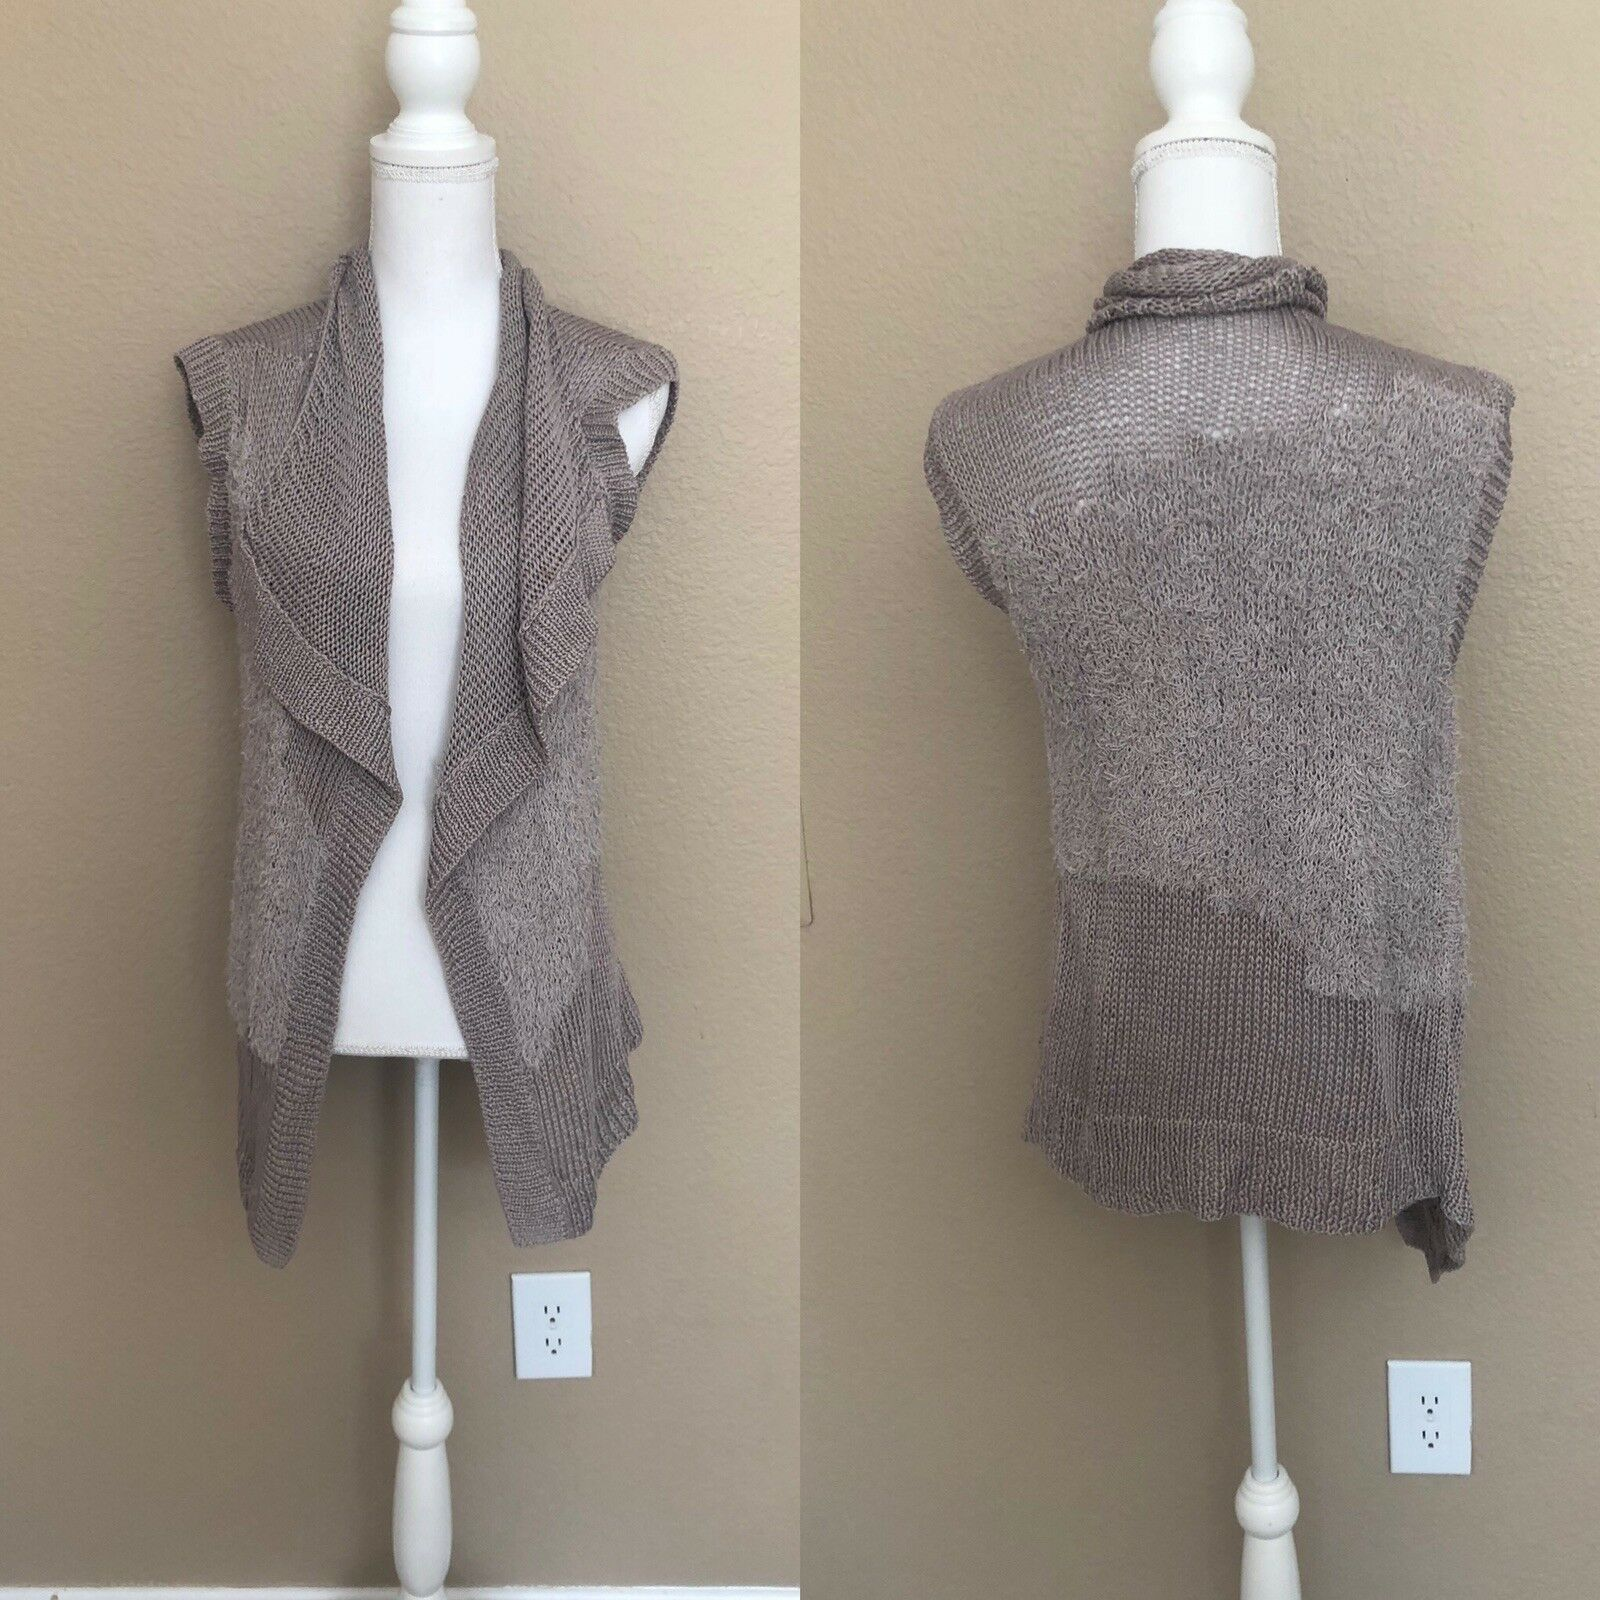 THEORY WOMEN'S SWEATER VEST DRAPE OPEN FRONT One Size Tan Cotton